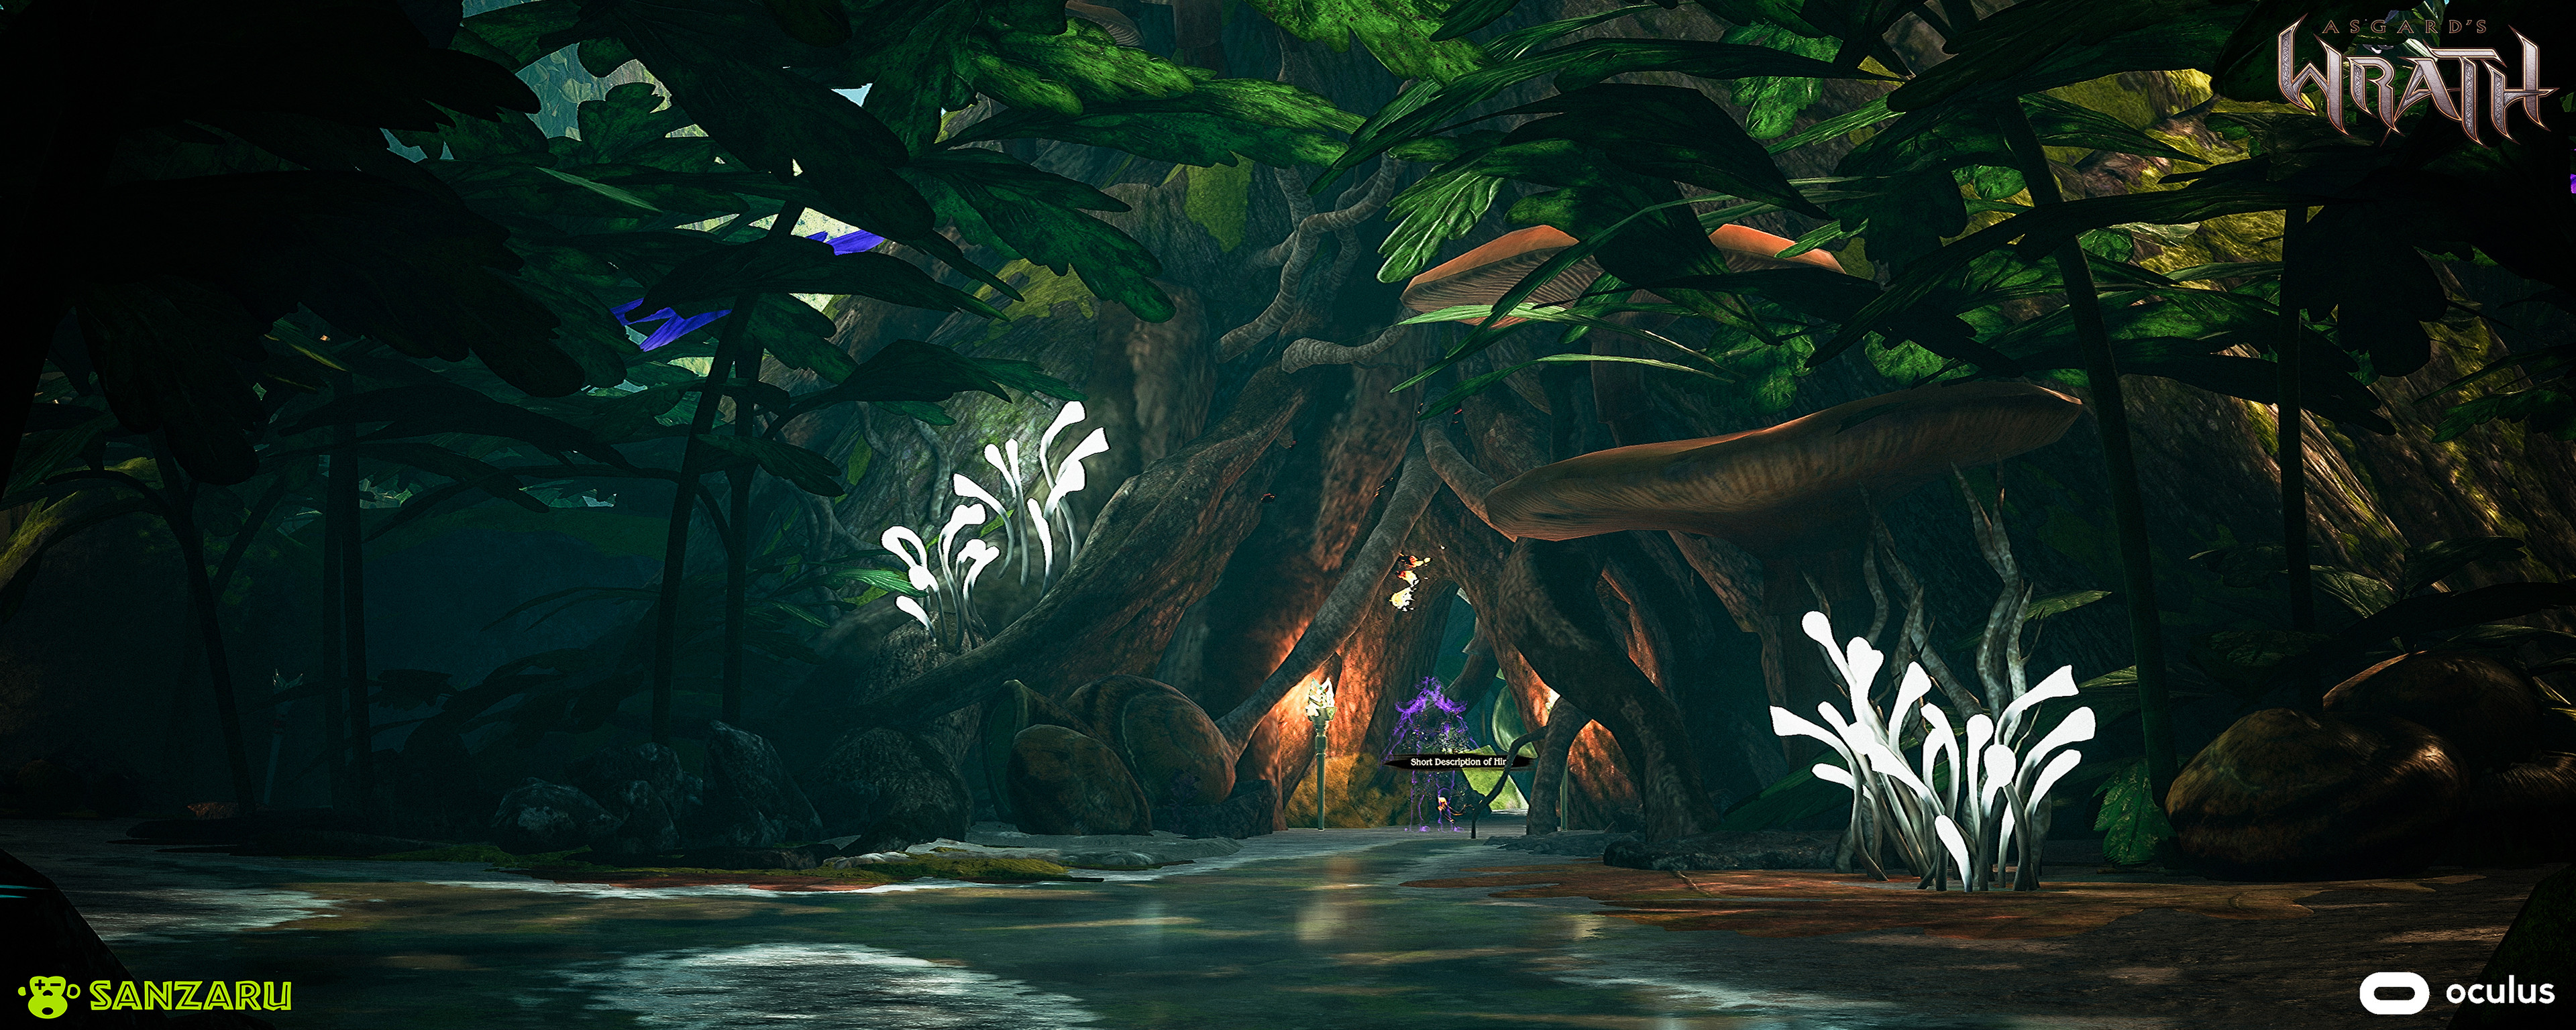 Various World Materials were created and used with Blend maps for various large structures such as the Trees and Roots in the level.